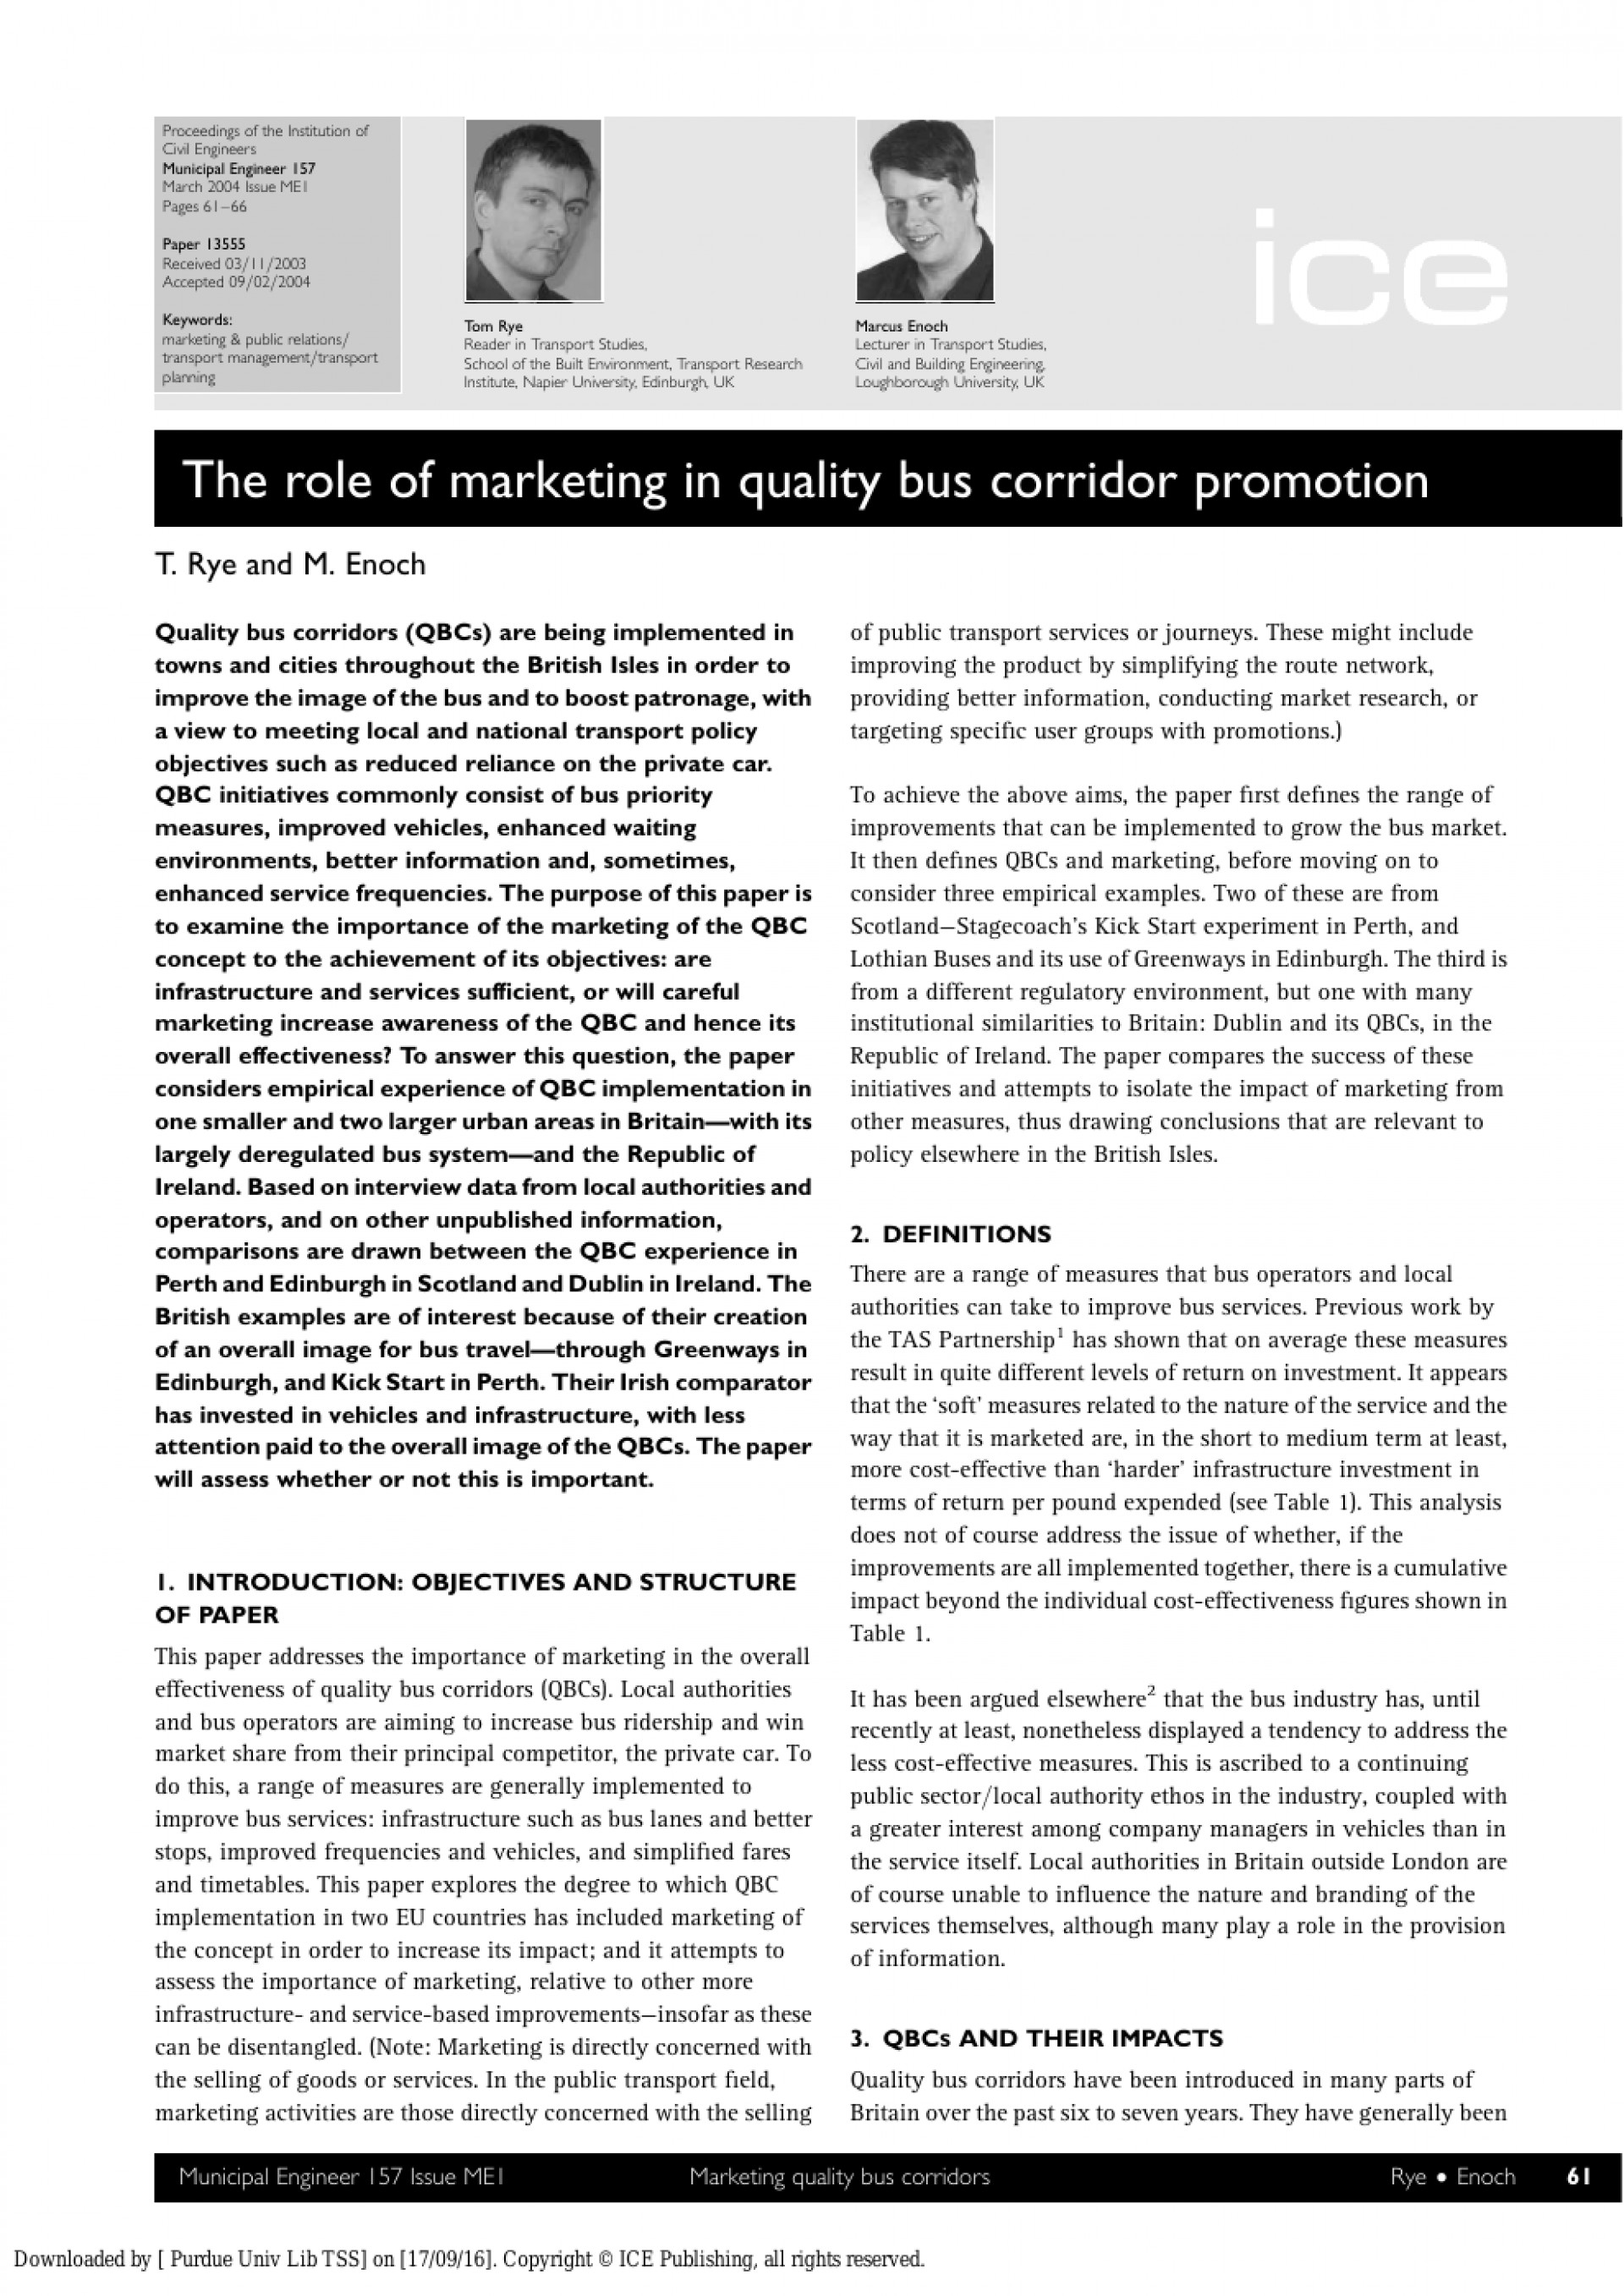 010 Marketing Researchs Pdf Free Download Impressive Research Papers 1920